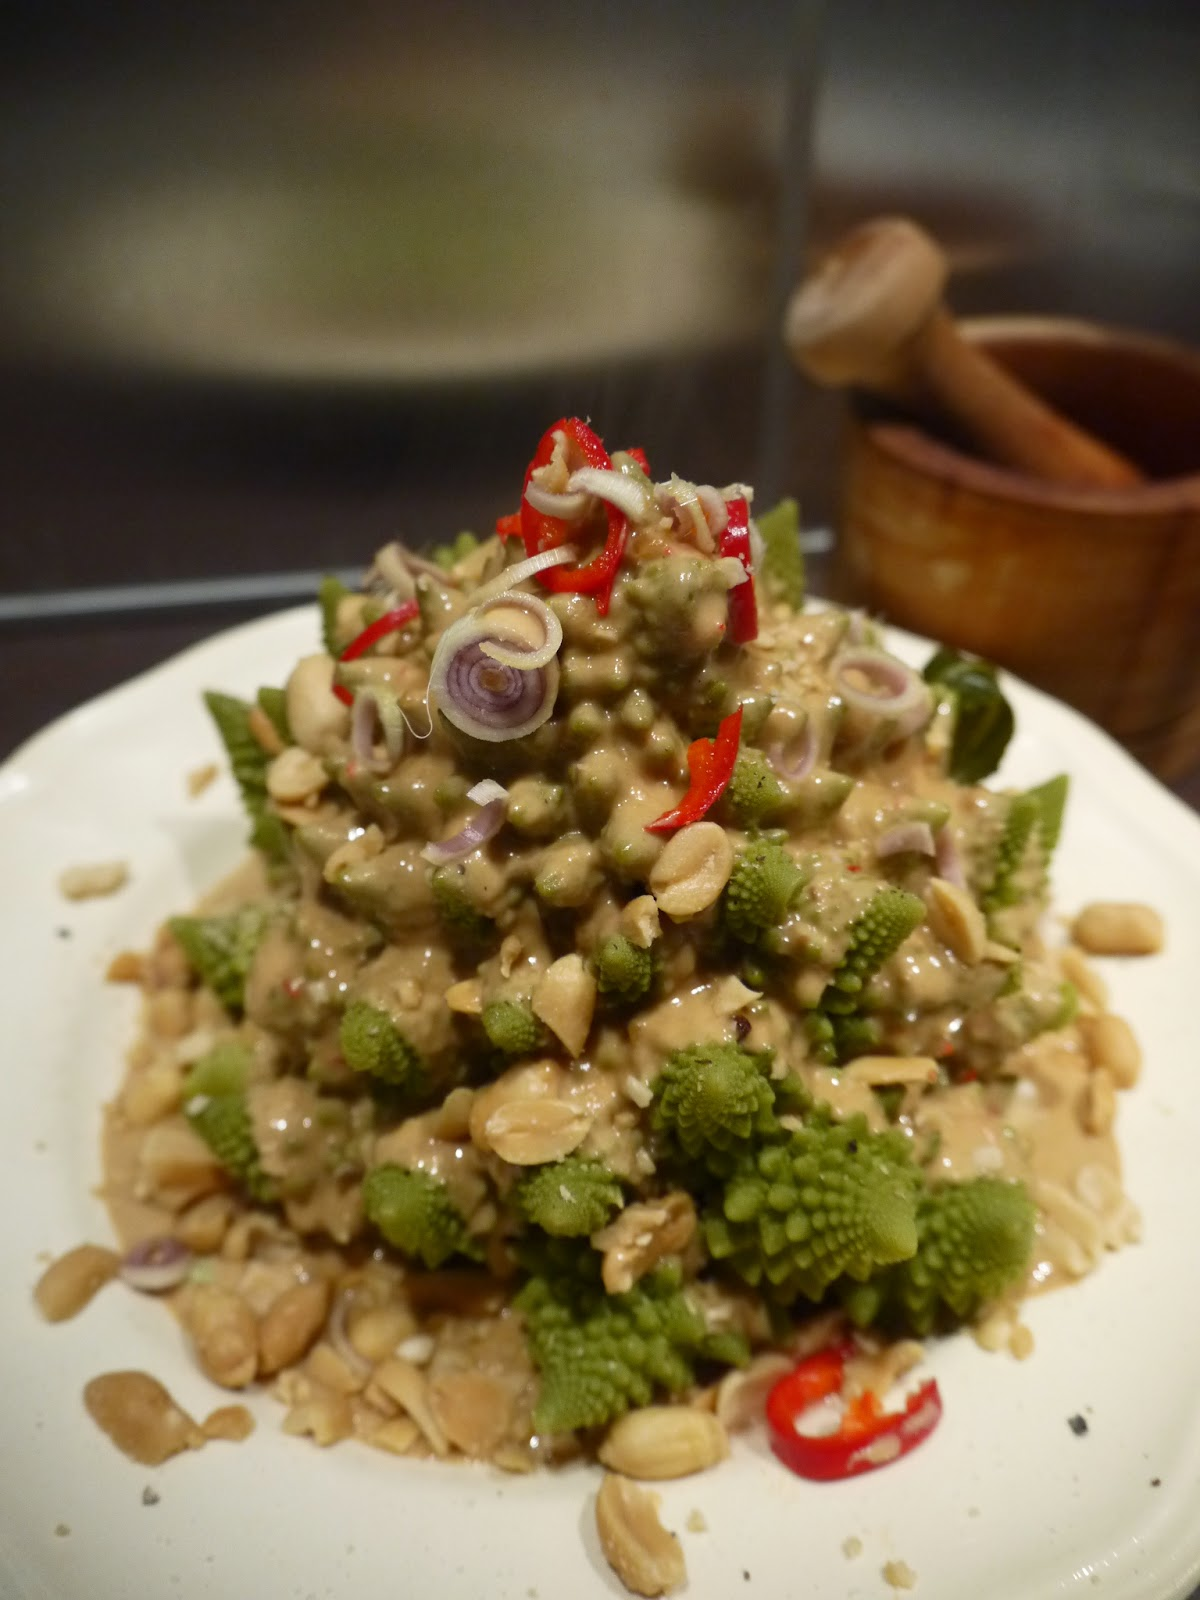 Romanesco with sate sauce by Appetit Voyage